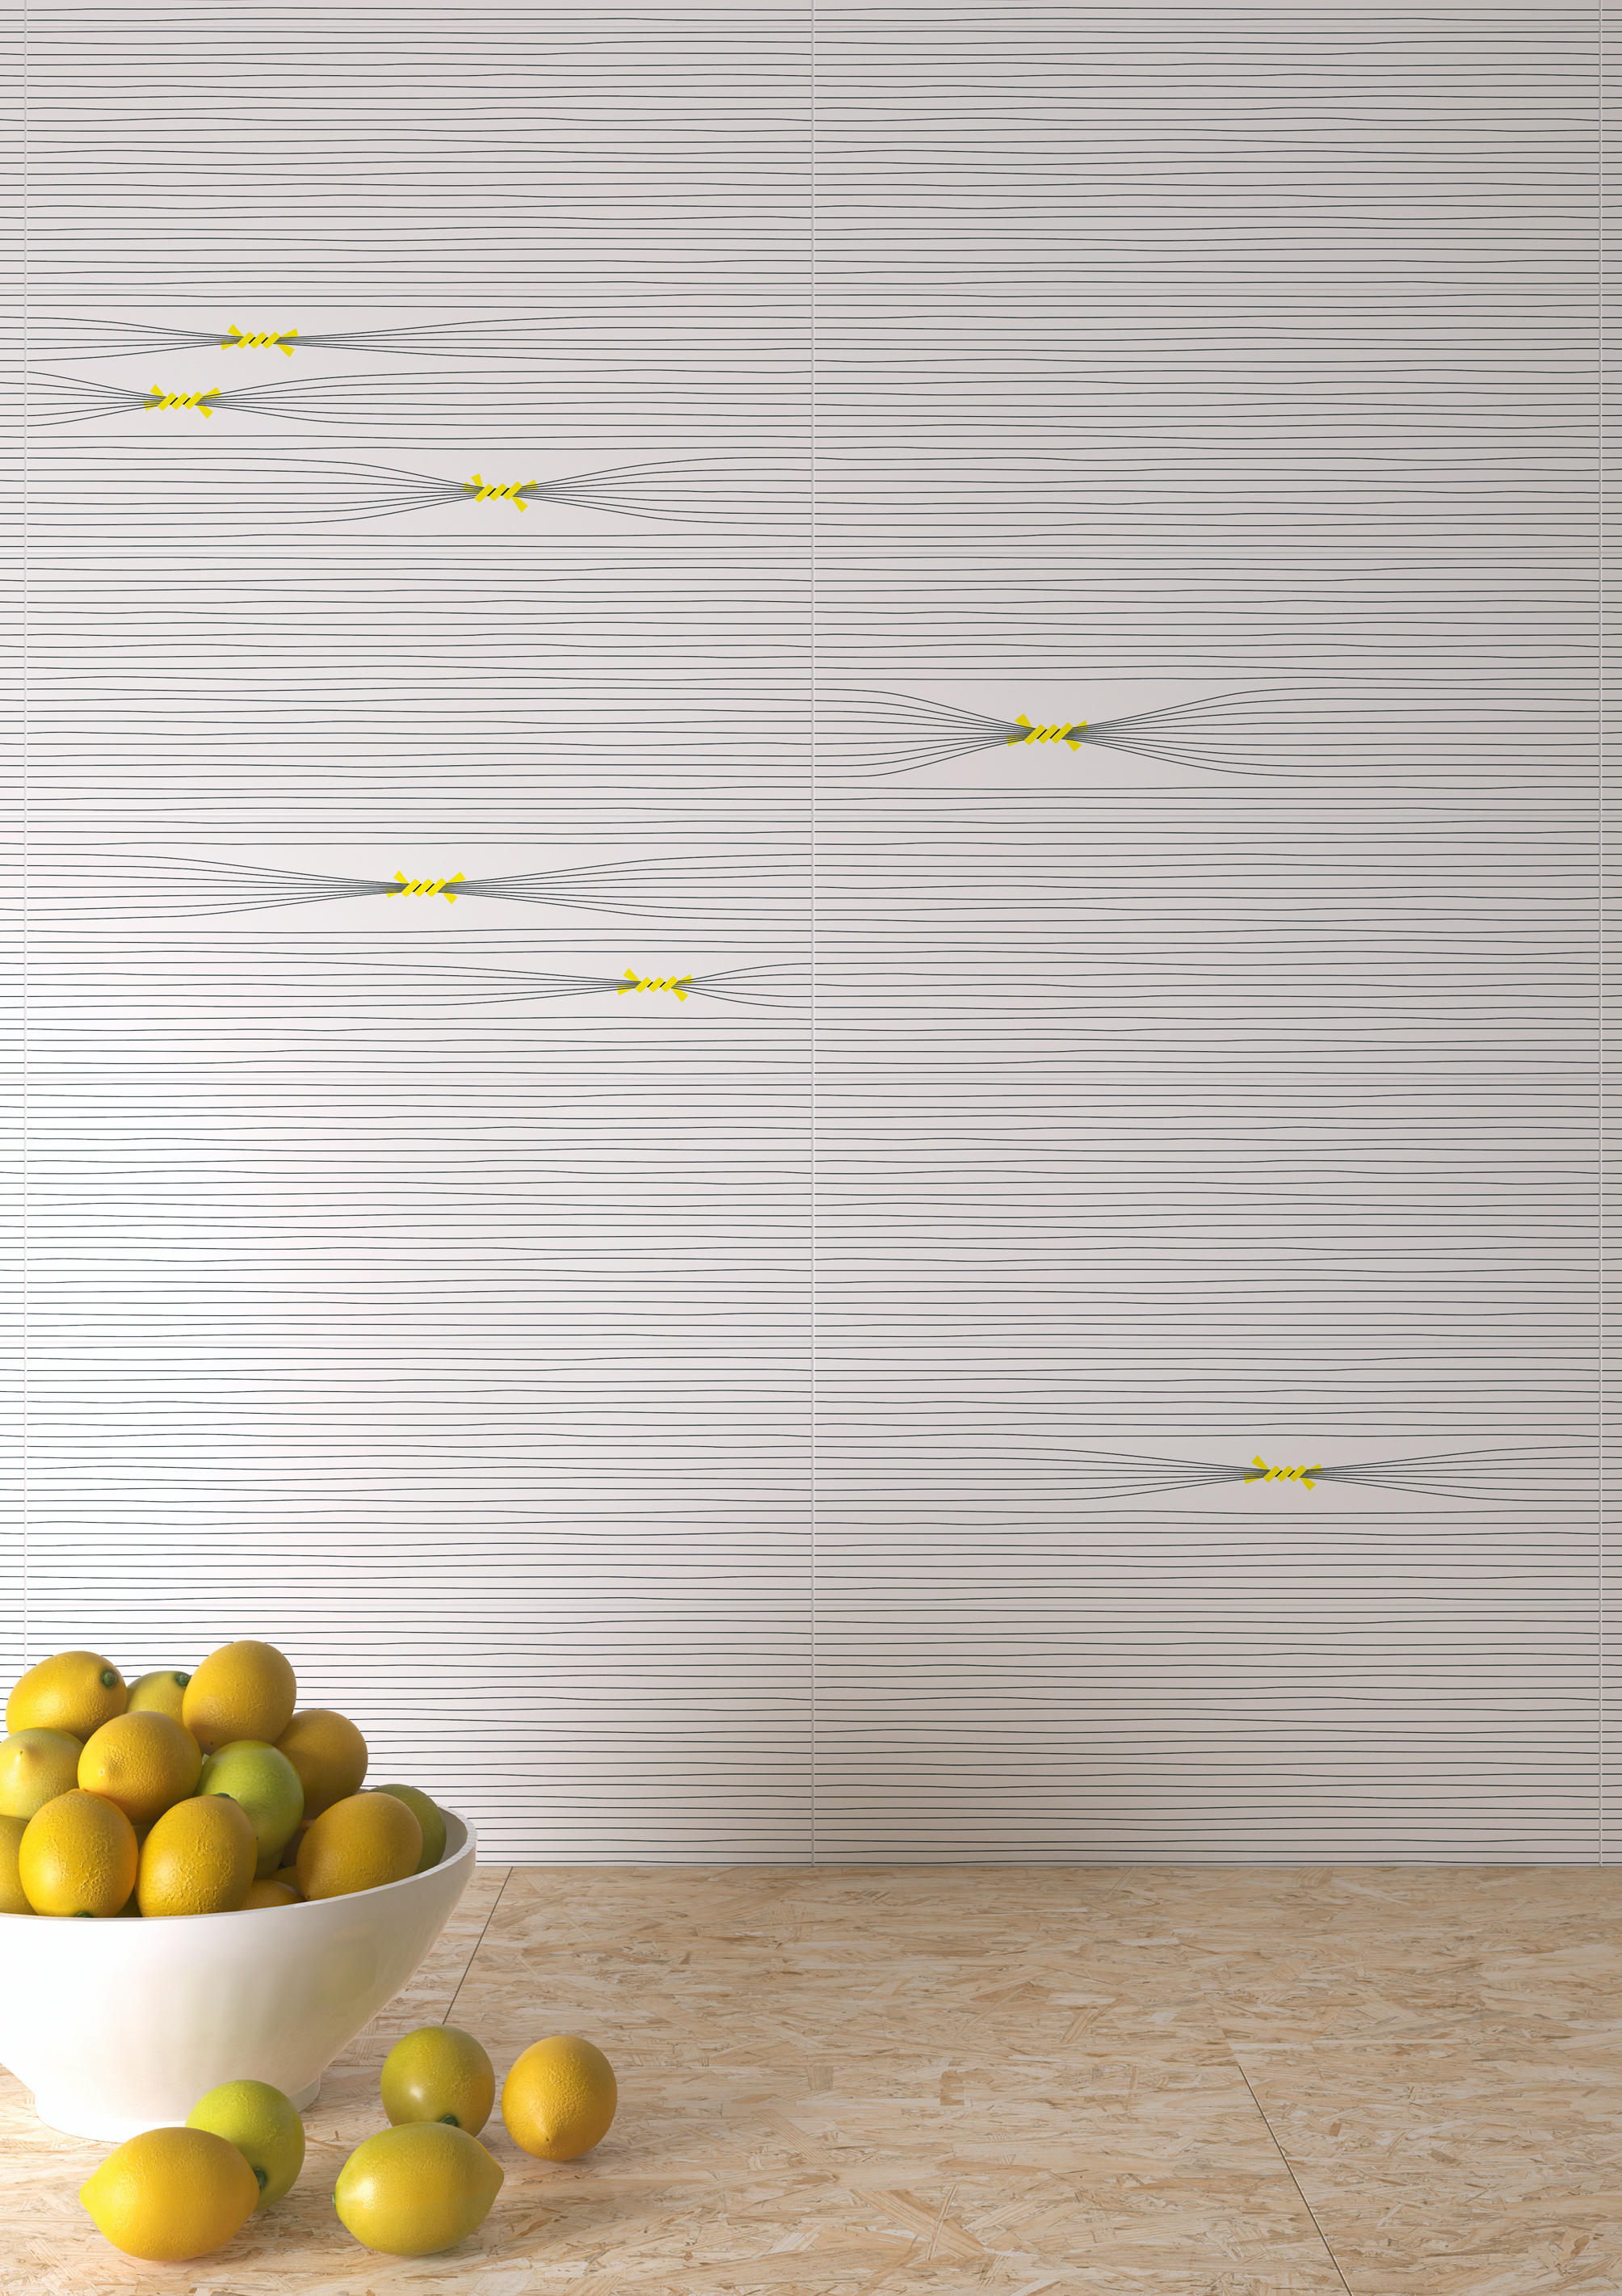 Asaro lima ceramic tiles from vives cermica architonic asaro lima by vives cermica dailygadgetfo Choice Image